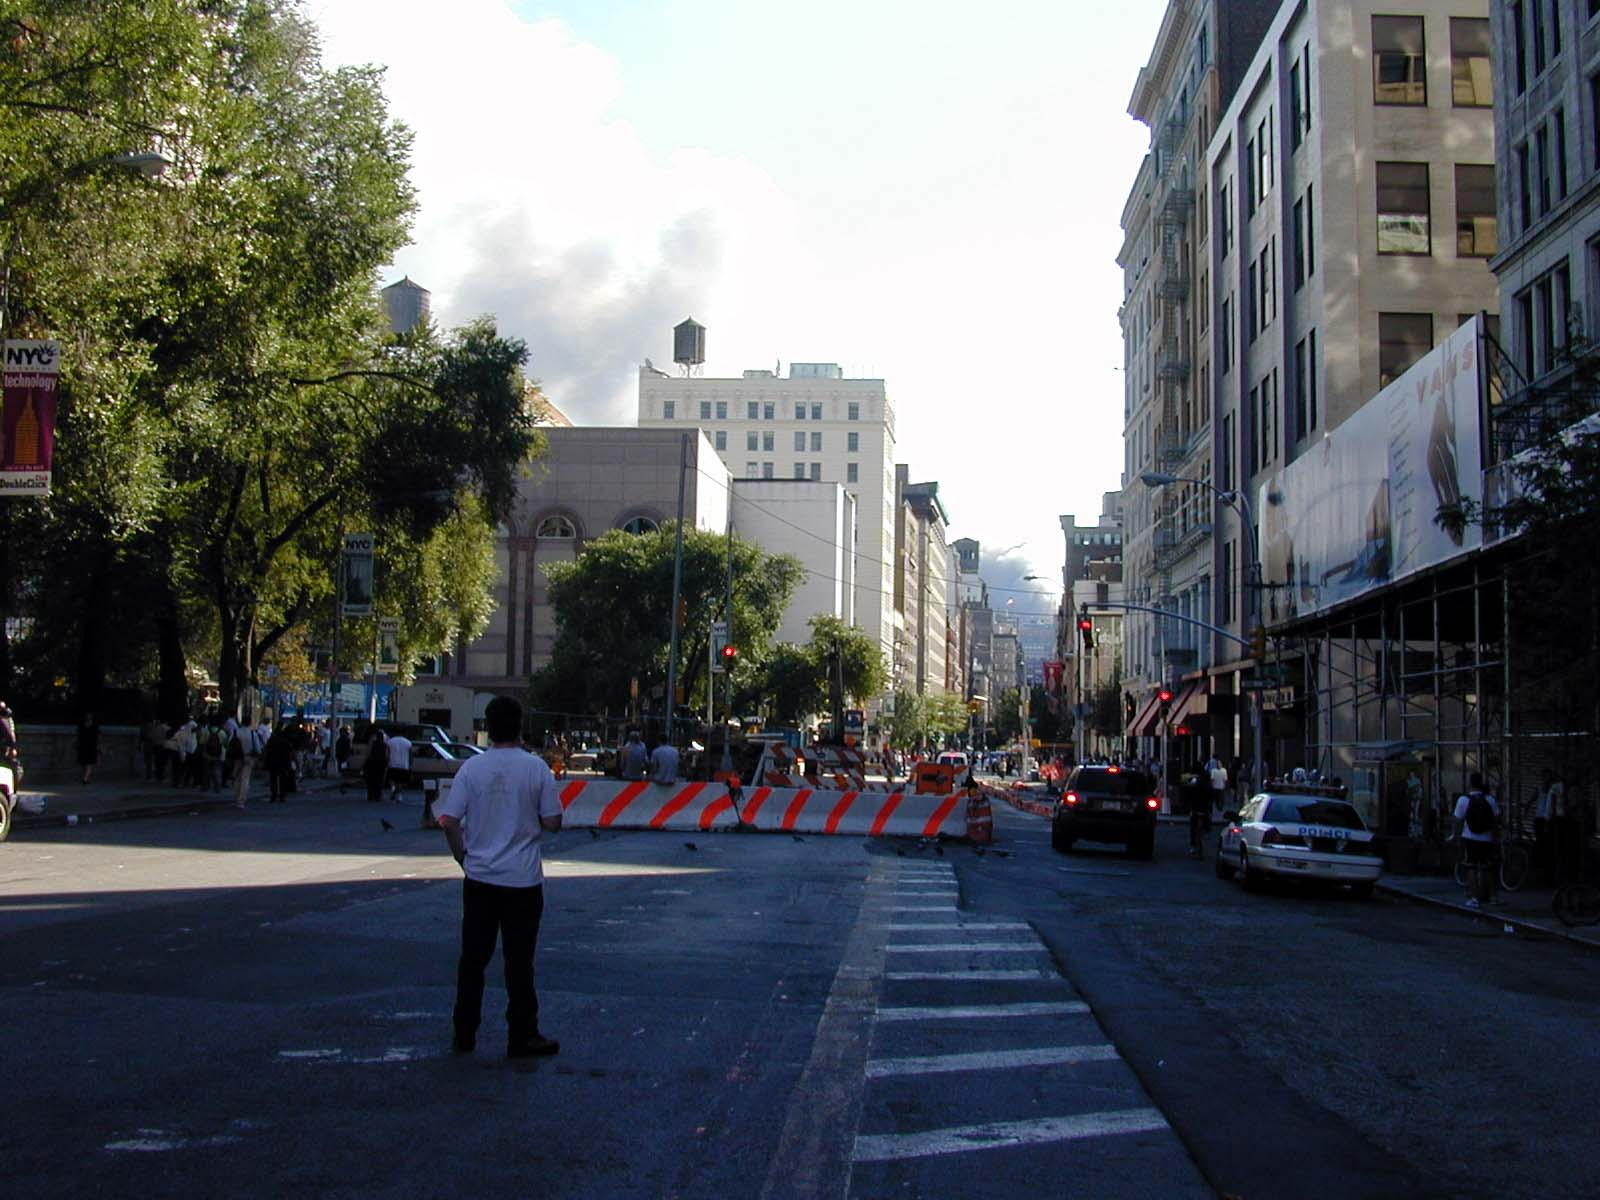 062 - 4PM - Union Square, looking south